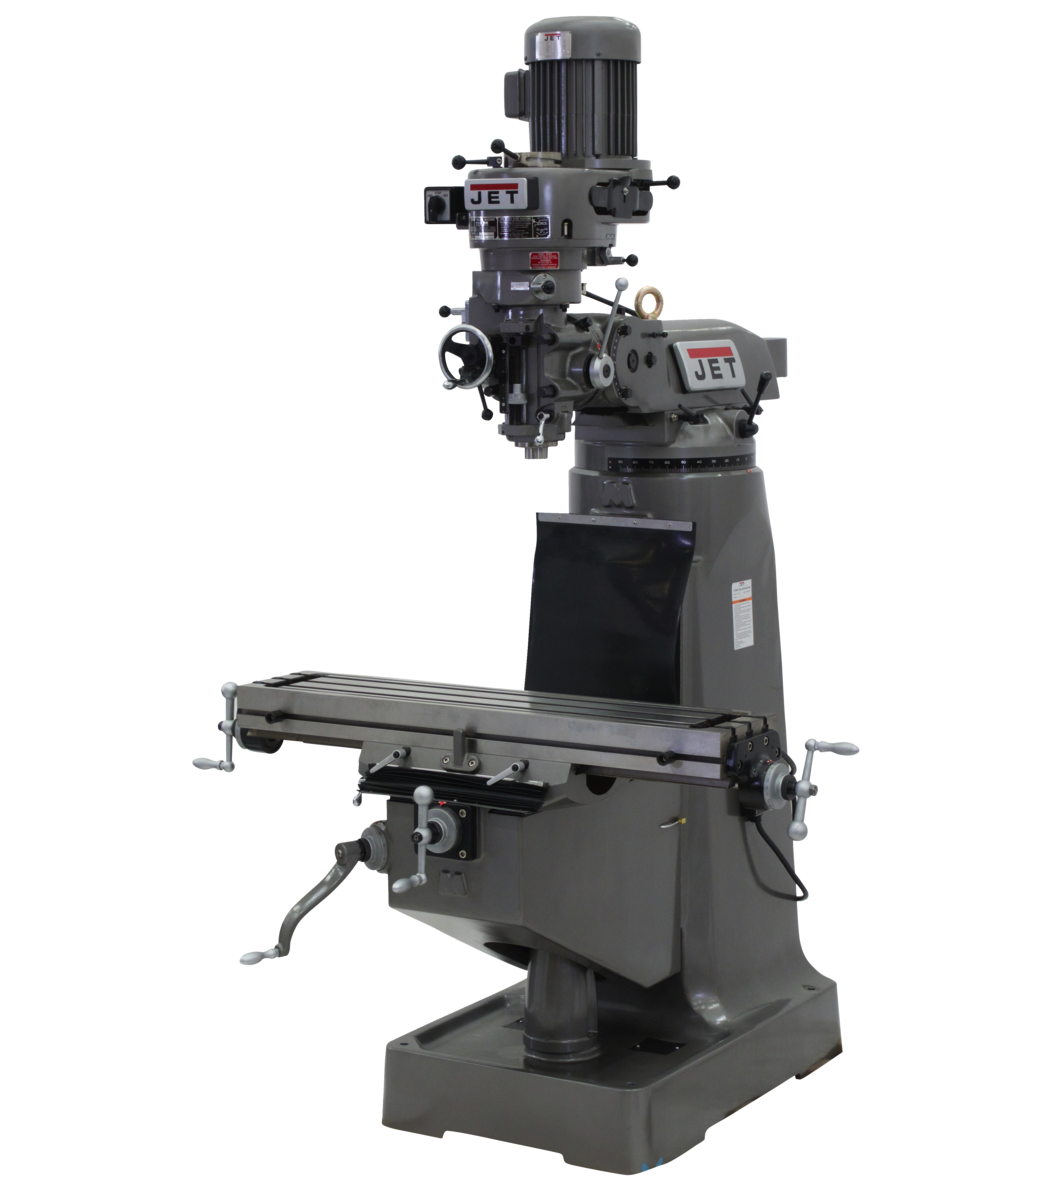 JTM-2 Mill With 3-Axis ACU-RITE 203 DRO (Knee) With X-Axis Powerfeed